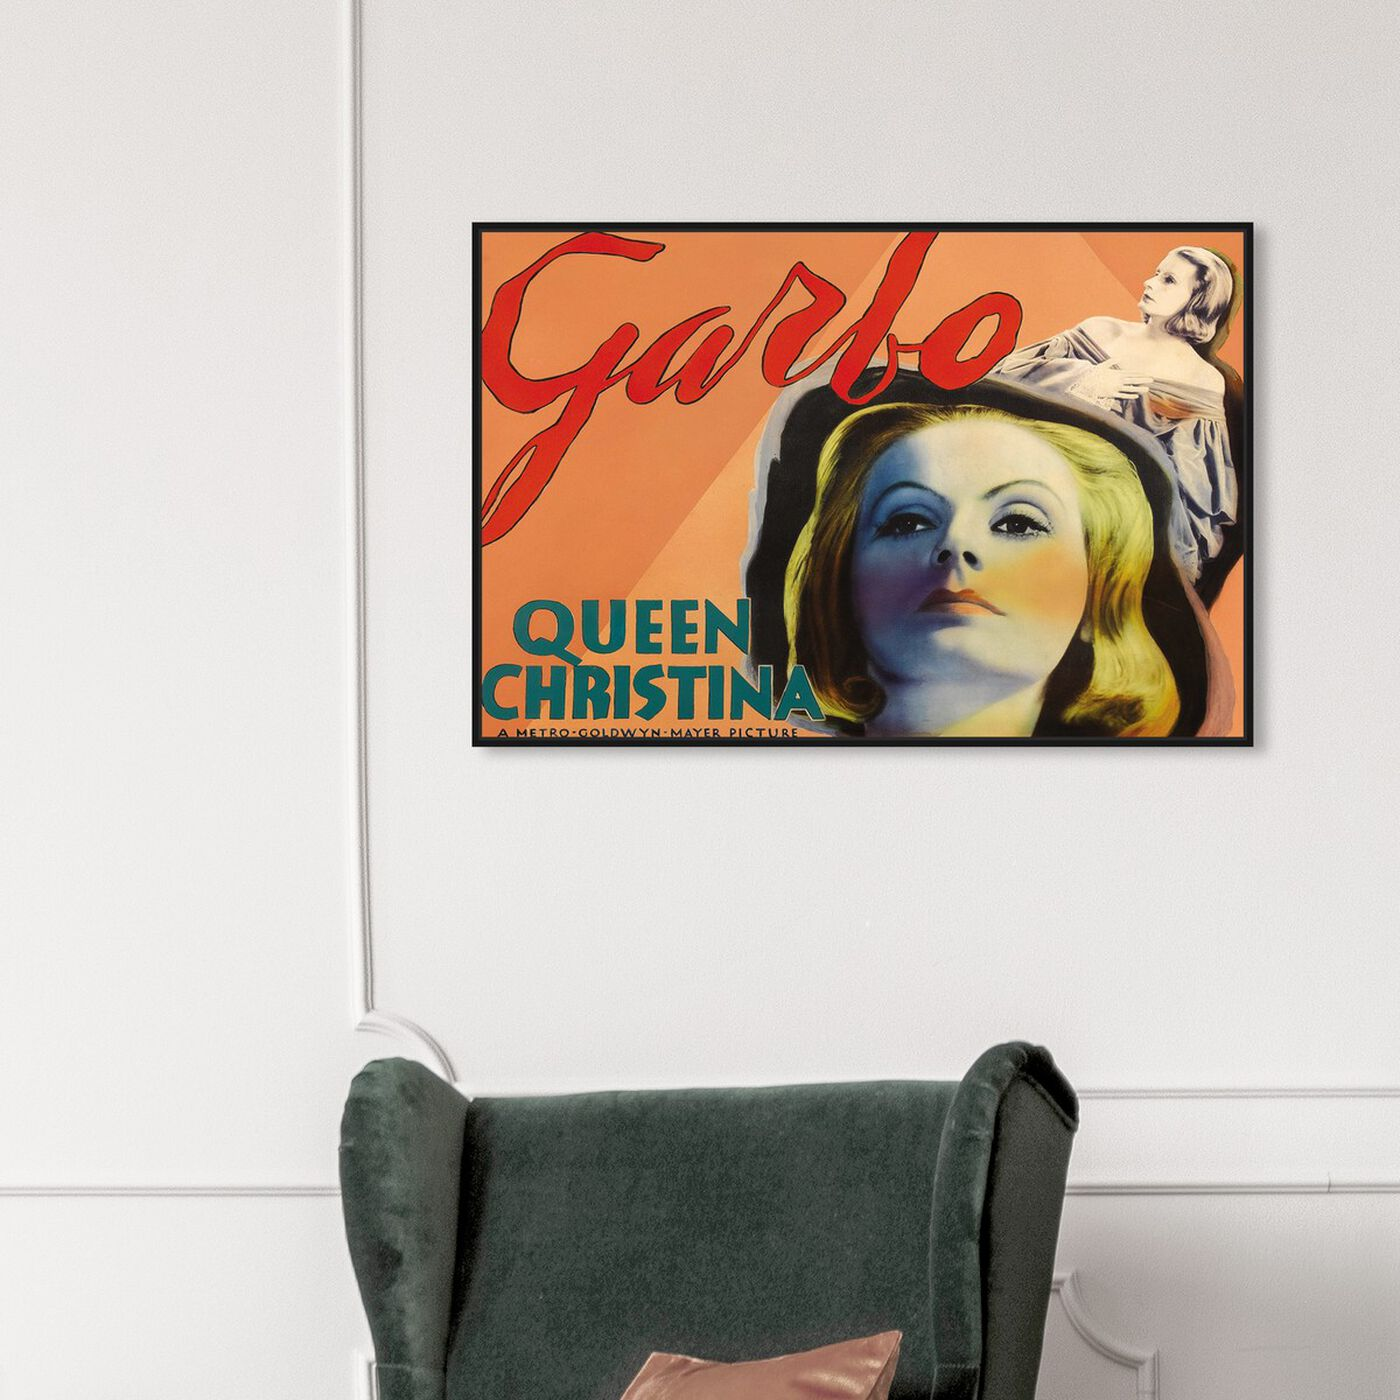 Hanging view of Garbo featuring advertising and posters art.